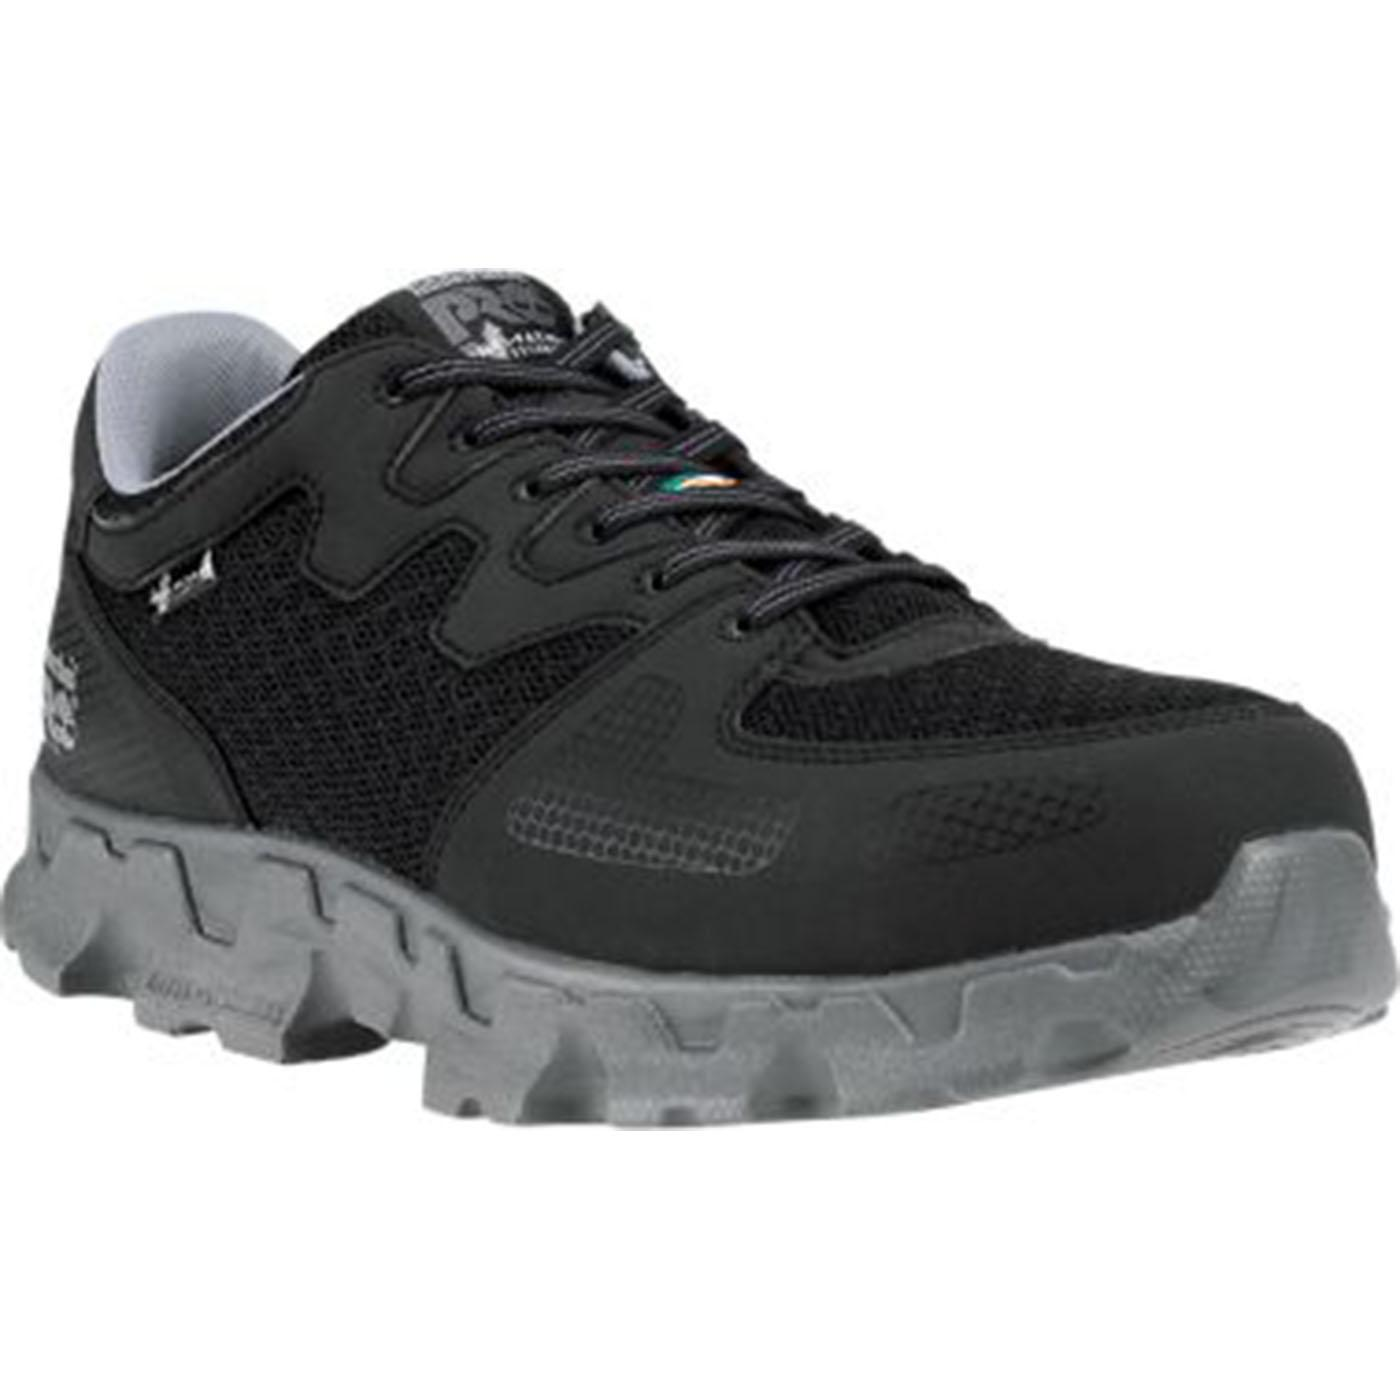 shoes comfortable feet for black cute nike best comforter work info hesstonspeedway wide stylish